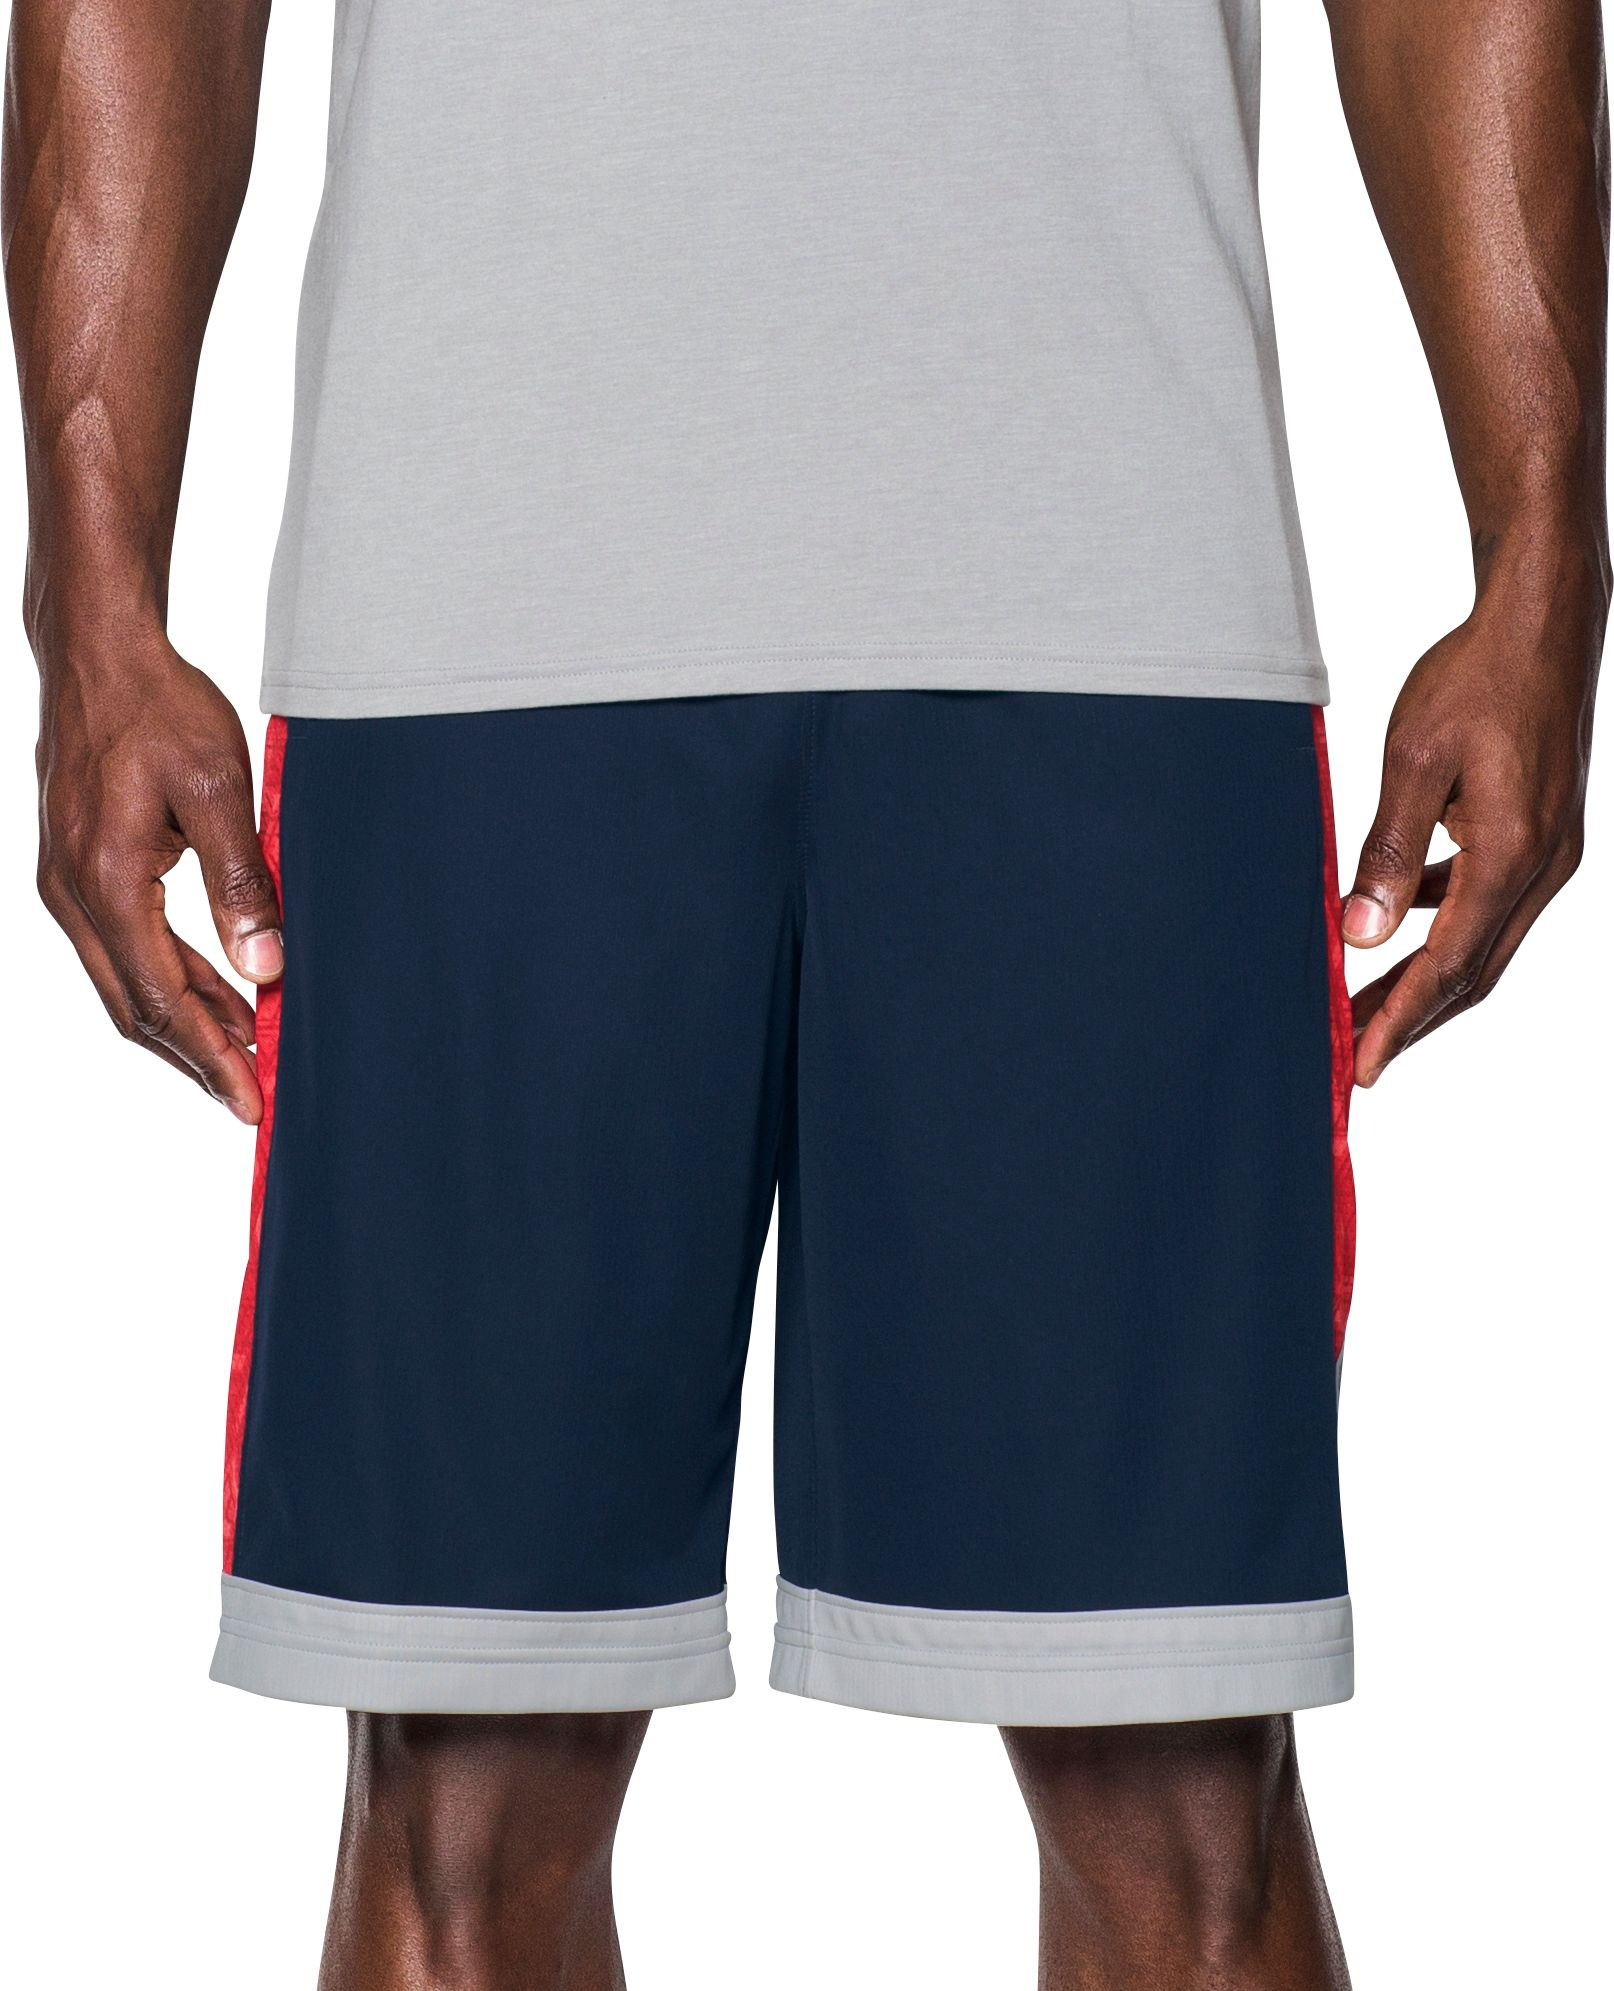 Mens basketball shorts on sale free shipping - Product Image Under Armour Men S Isolation 11 Basketball Shorts